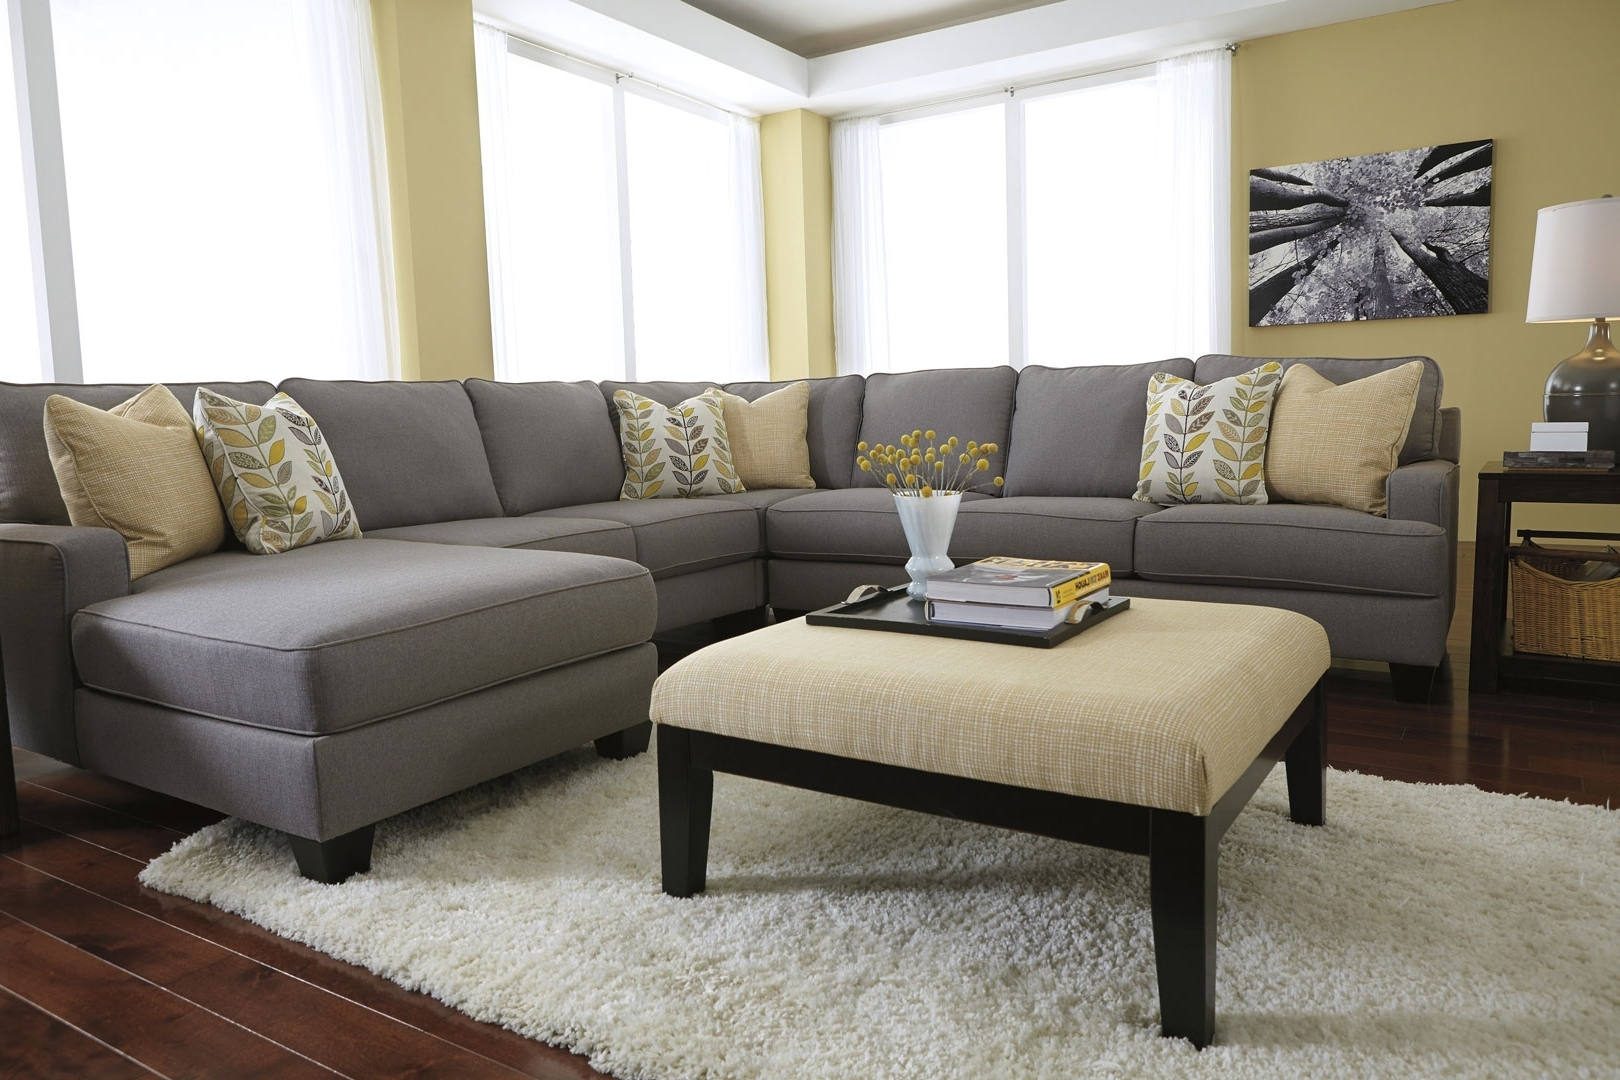 Fashionable Portland Or Sectional Sofas With Regard To Sectional Sofa (View 4 of 15)